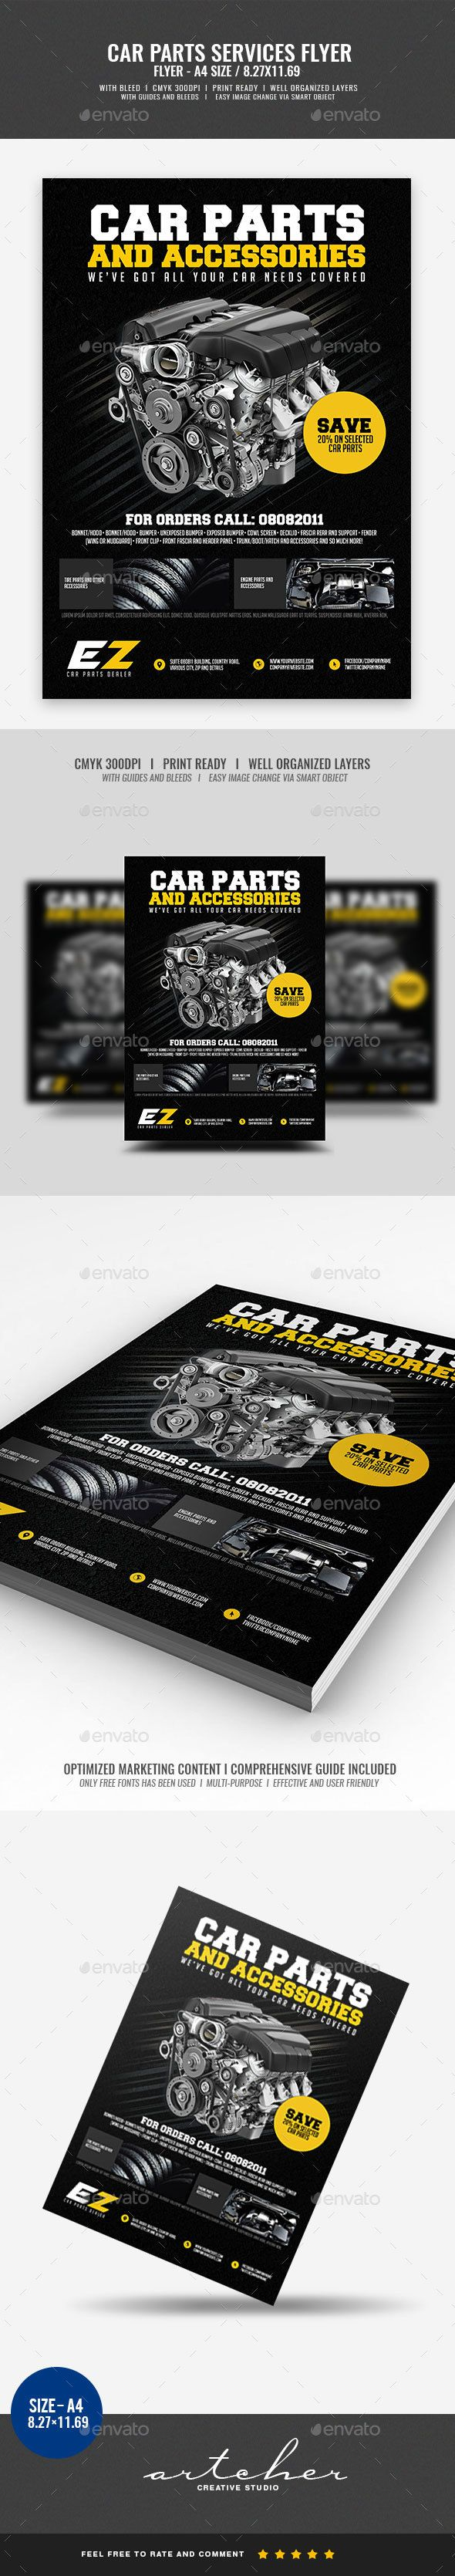 Car Parts and Accessories Flyer v2 Boost your company¡¯s sales and attract new customers! This Template has been developed to help Large and Small businesses improve their Marketing Opportunity and product/brand awareness, with well-studied content for effectiv